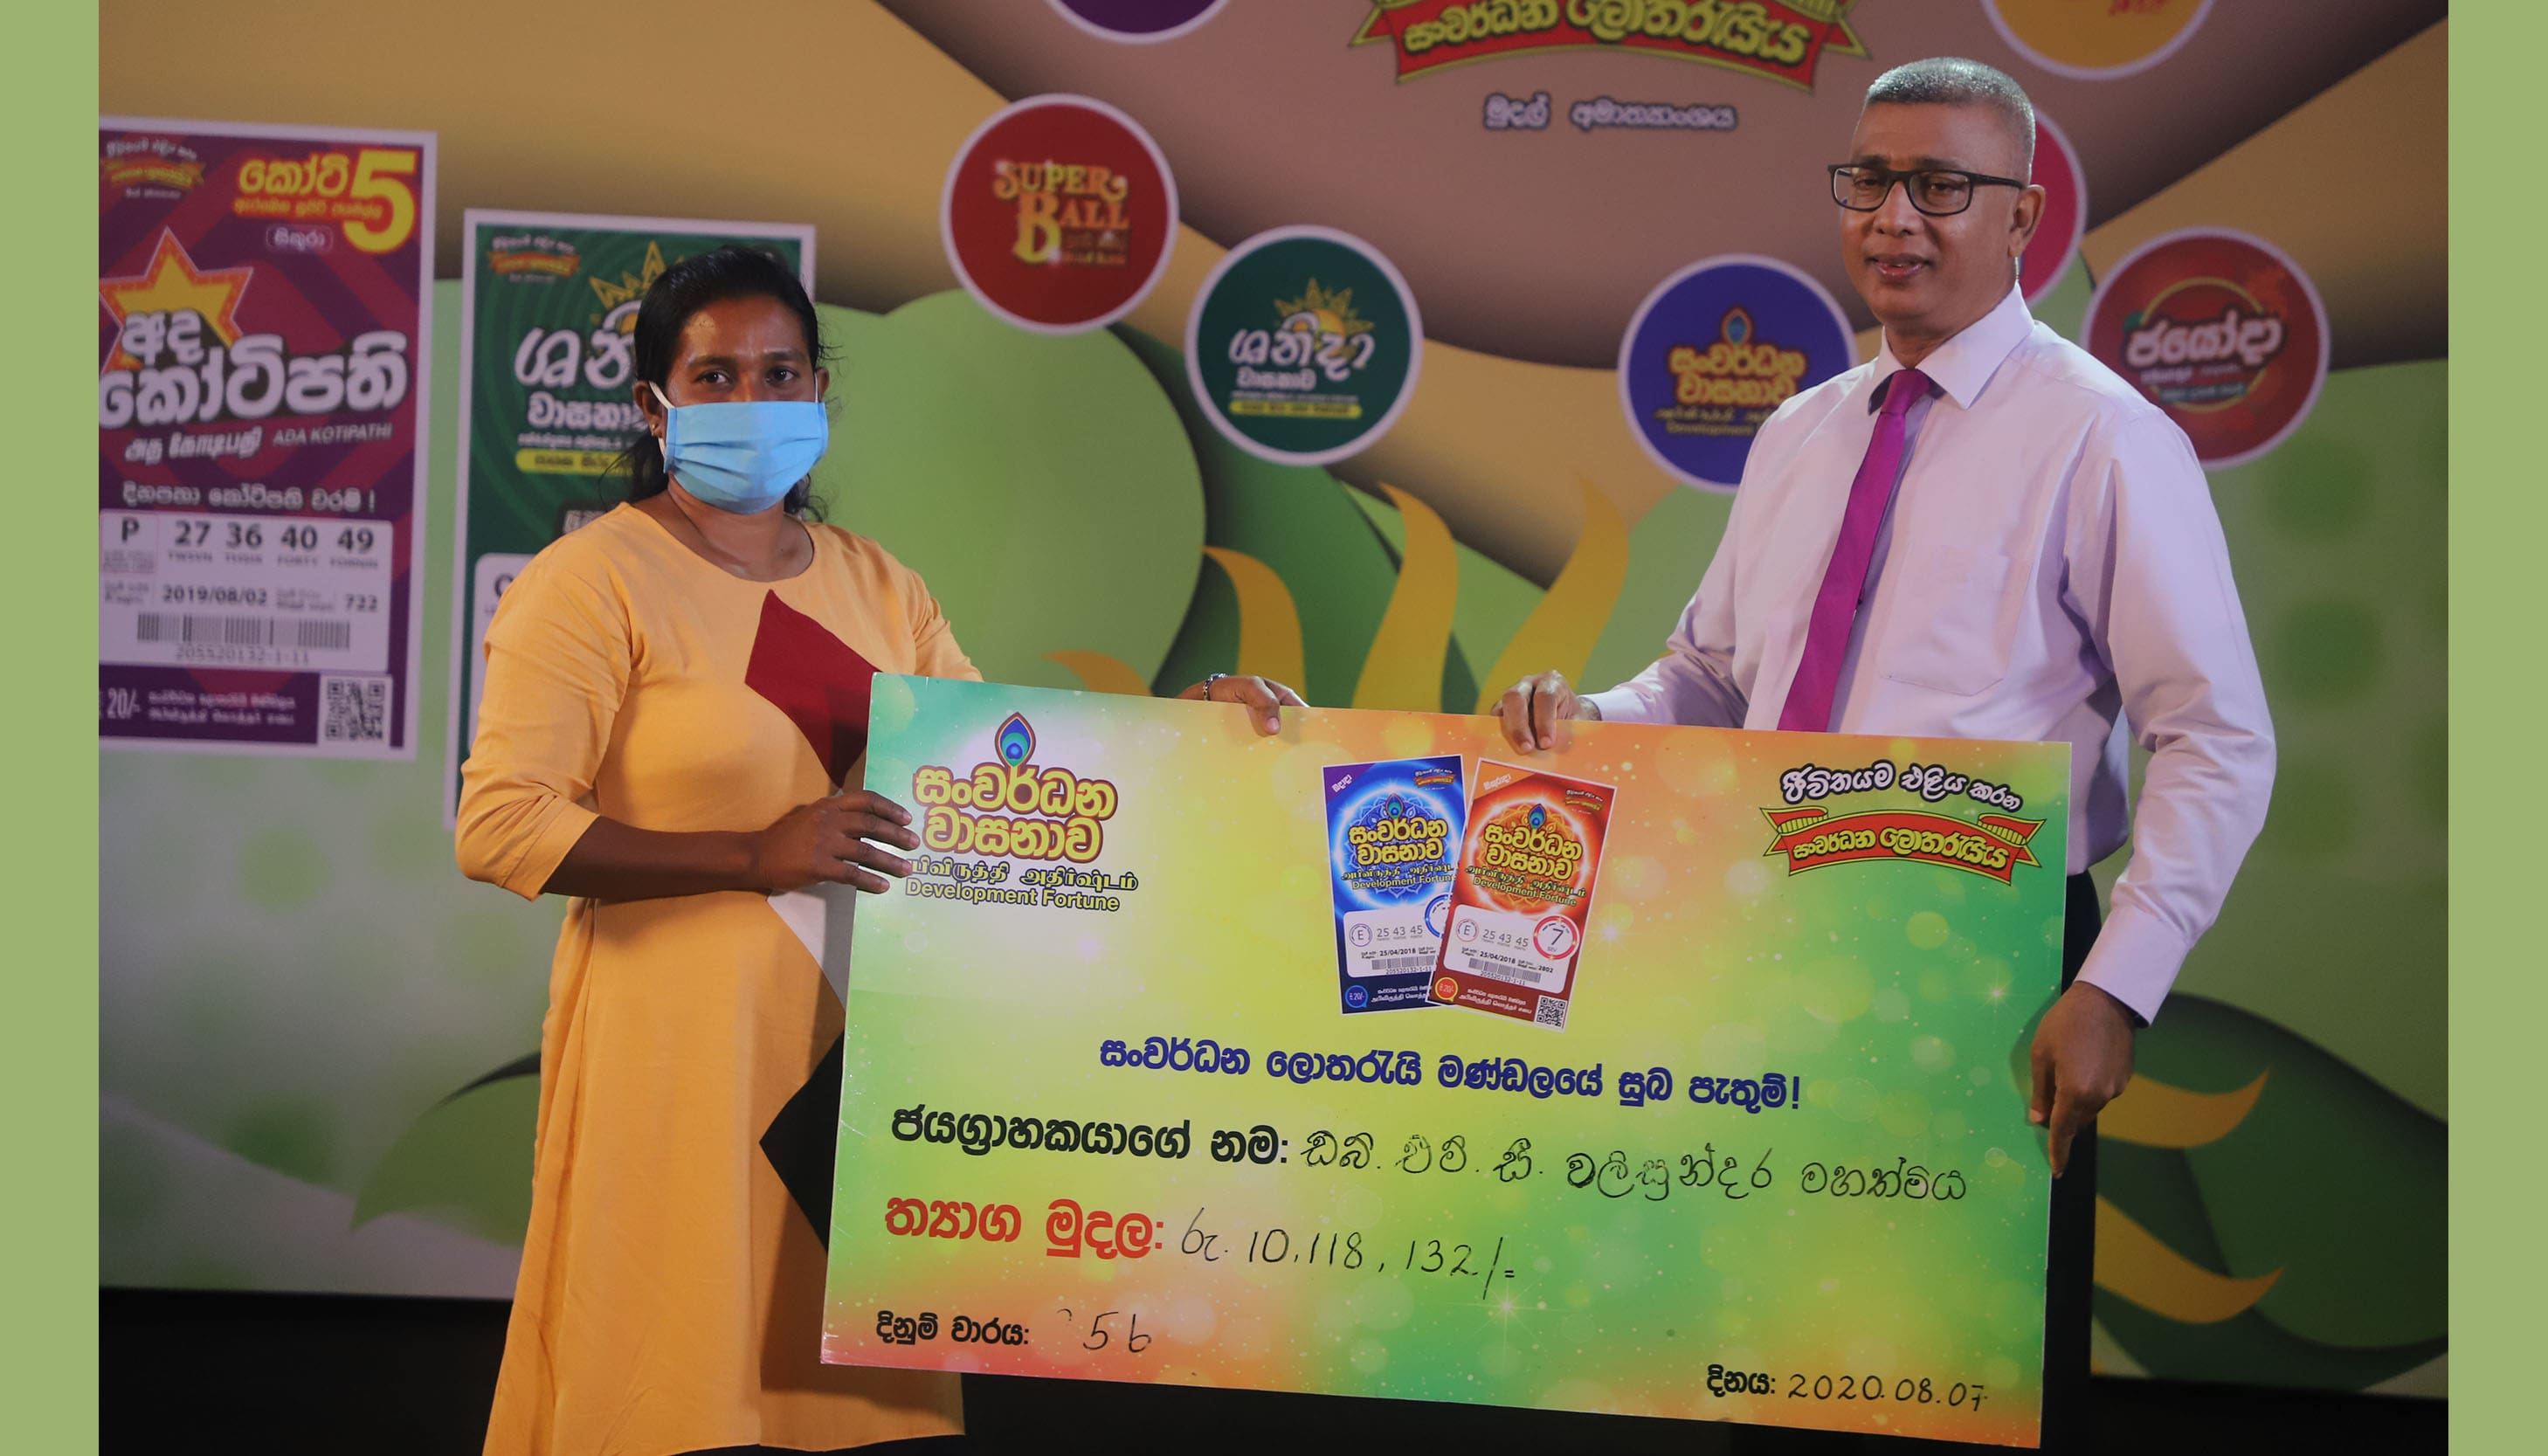 Super jackpot of the 356th draw of Sanwardana Wasana